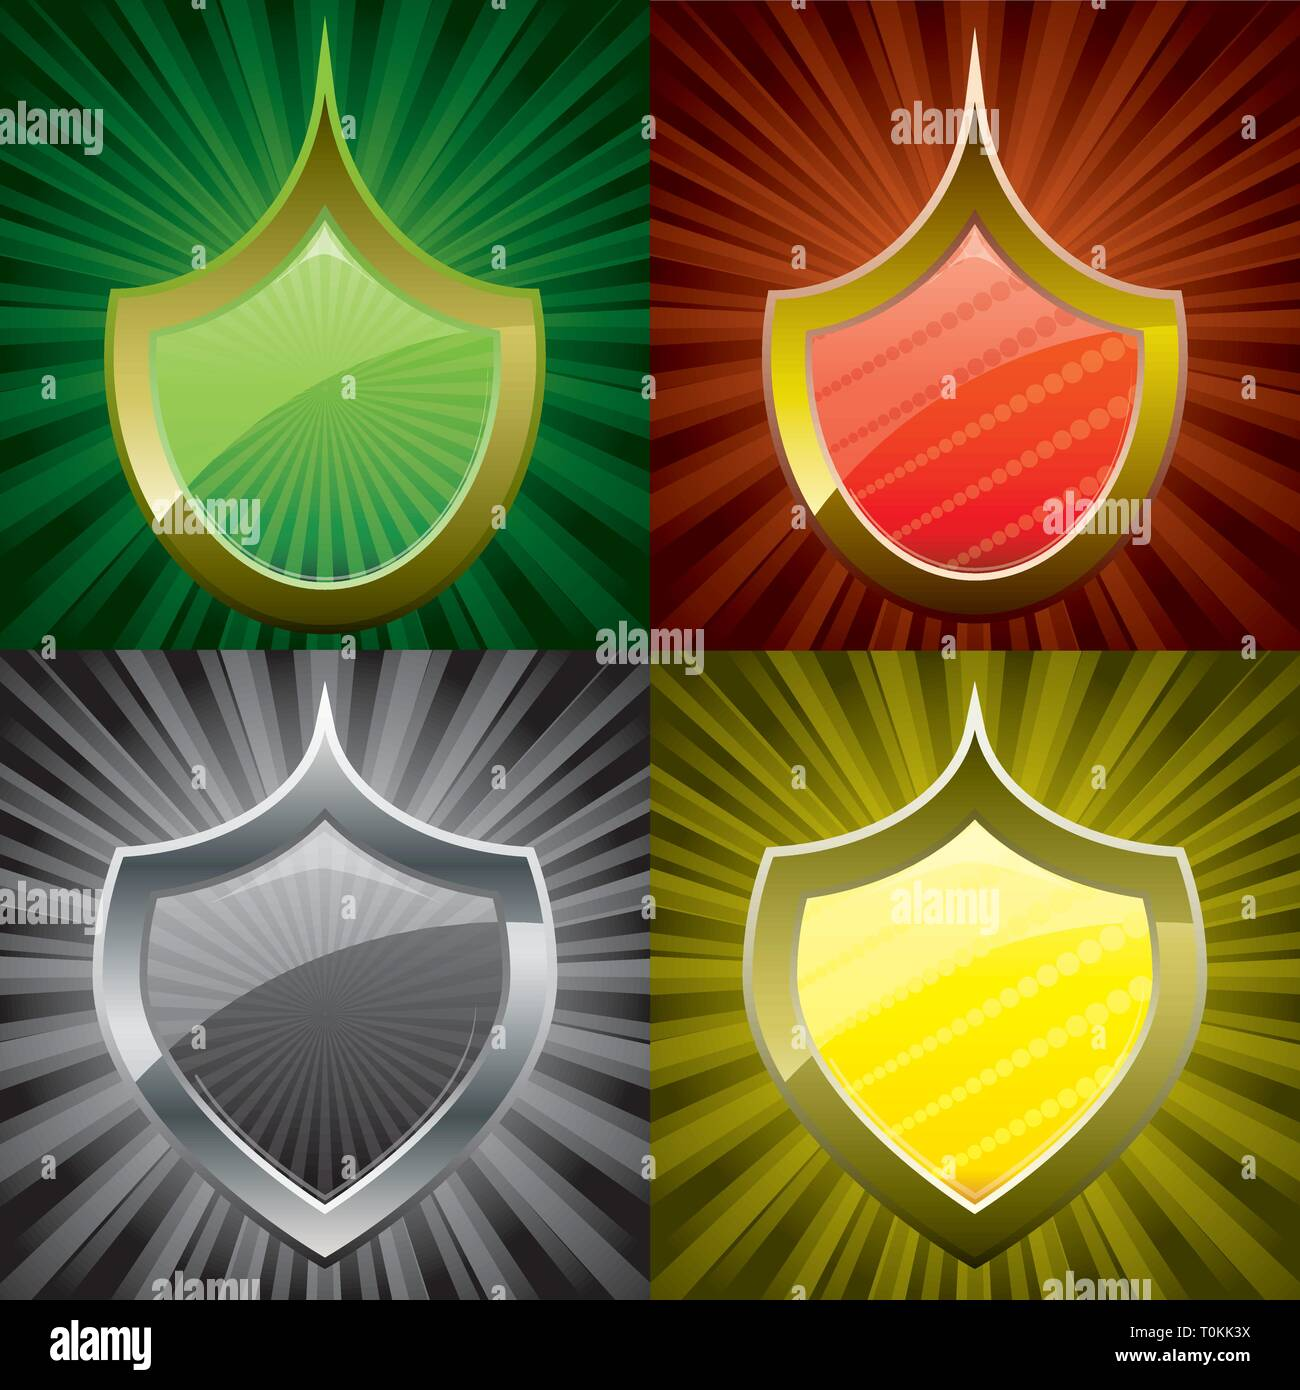 Set of security shields, coat of arms symbol icon, green, red, yellow, black, vector illustration - Stock Vector